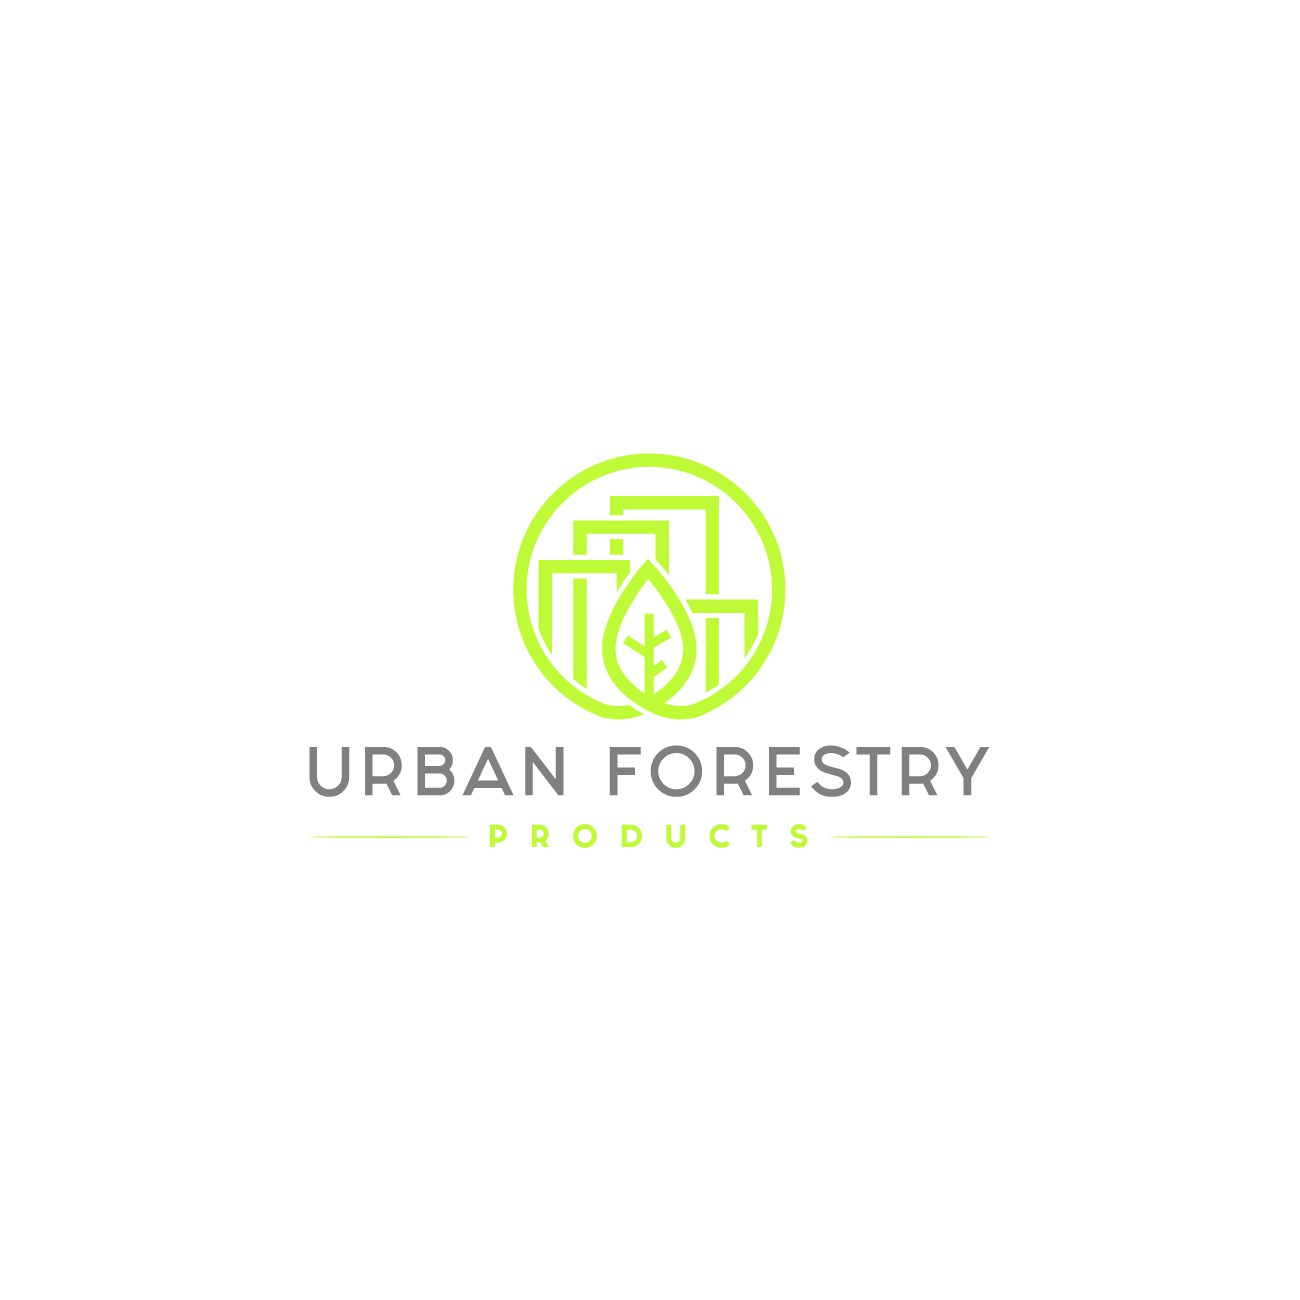 Furniture maker recycling urban trees into new creations in need of a creative logo design.